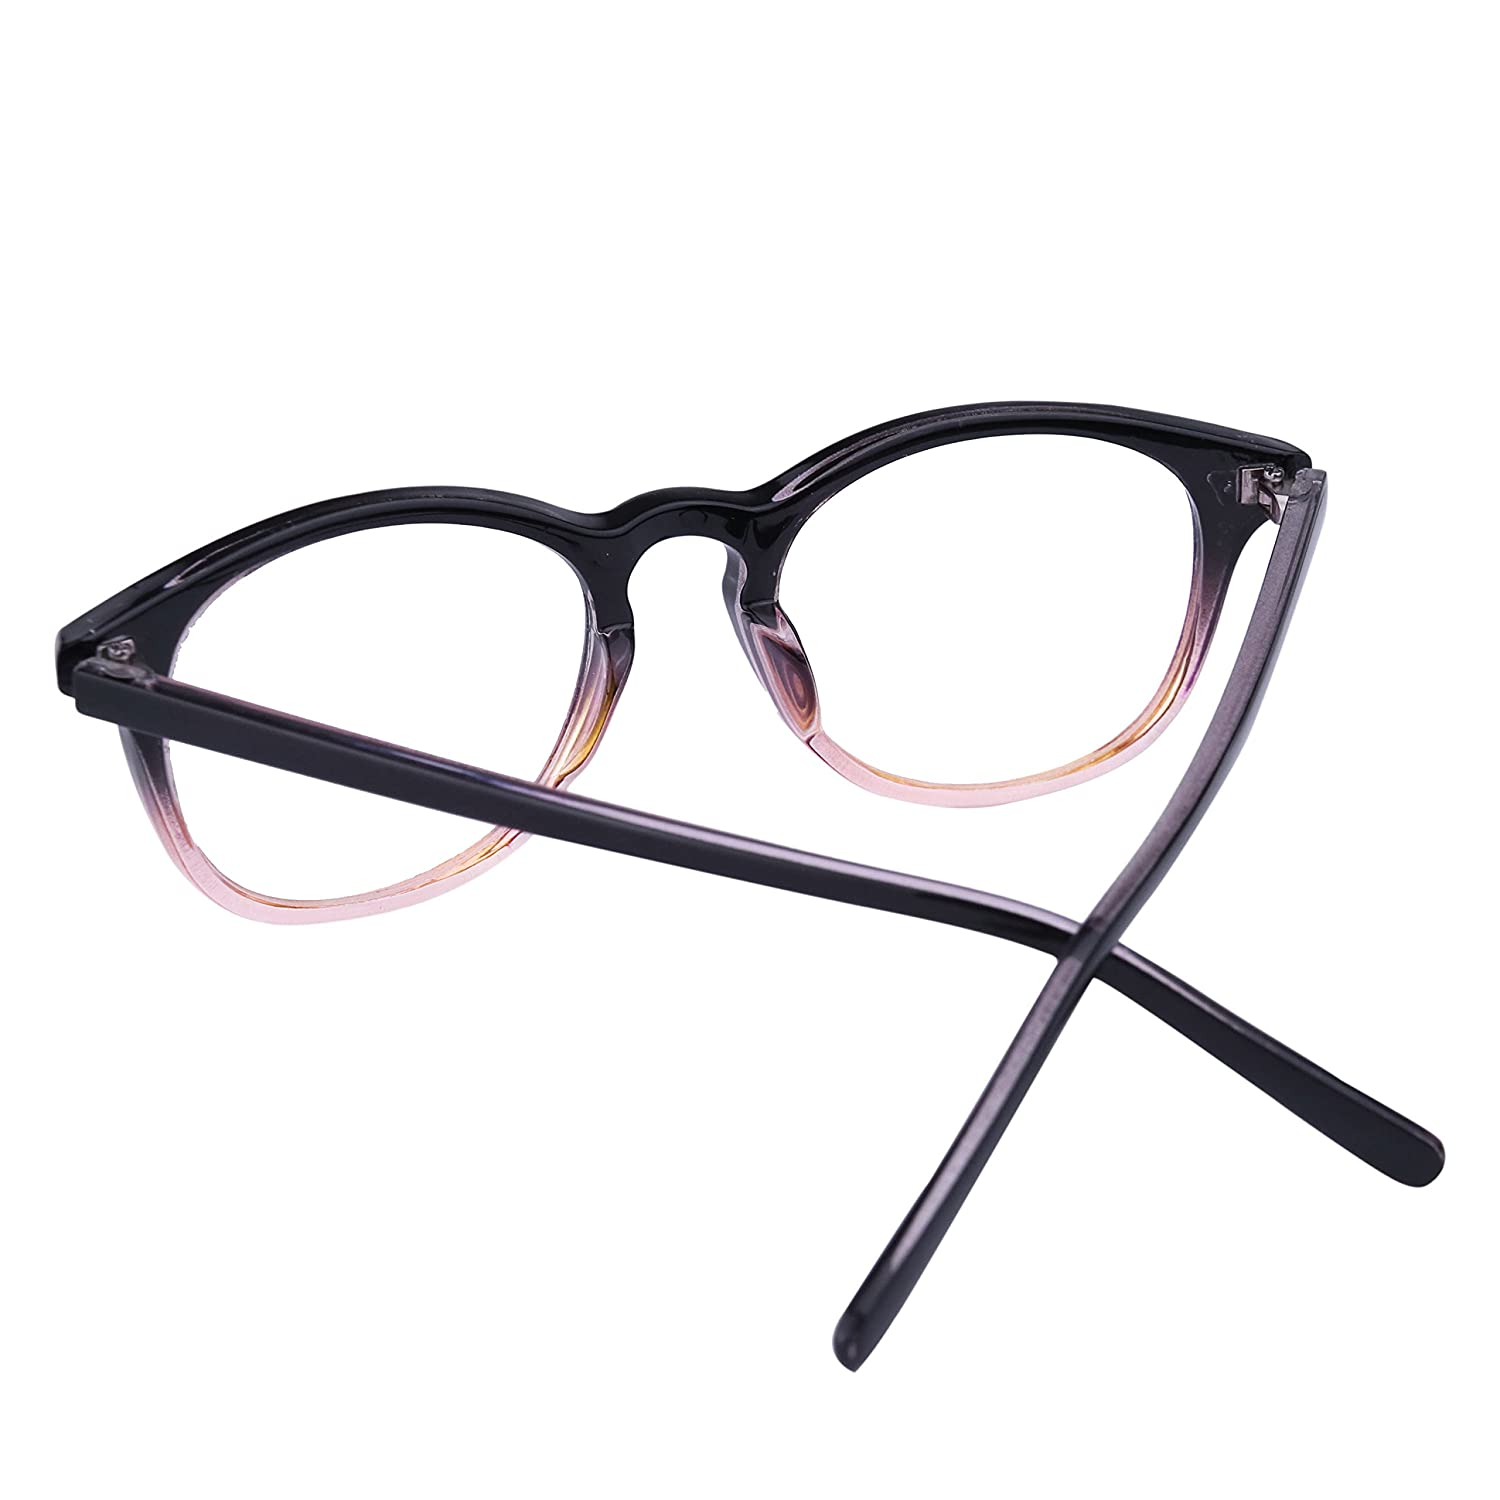 Manyo Optical Glasses Vintage Ultralight Classic Fashion Eyewear Decorative Spectacles